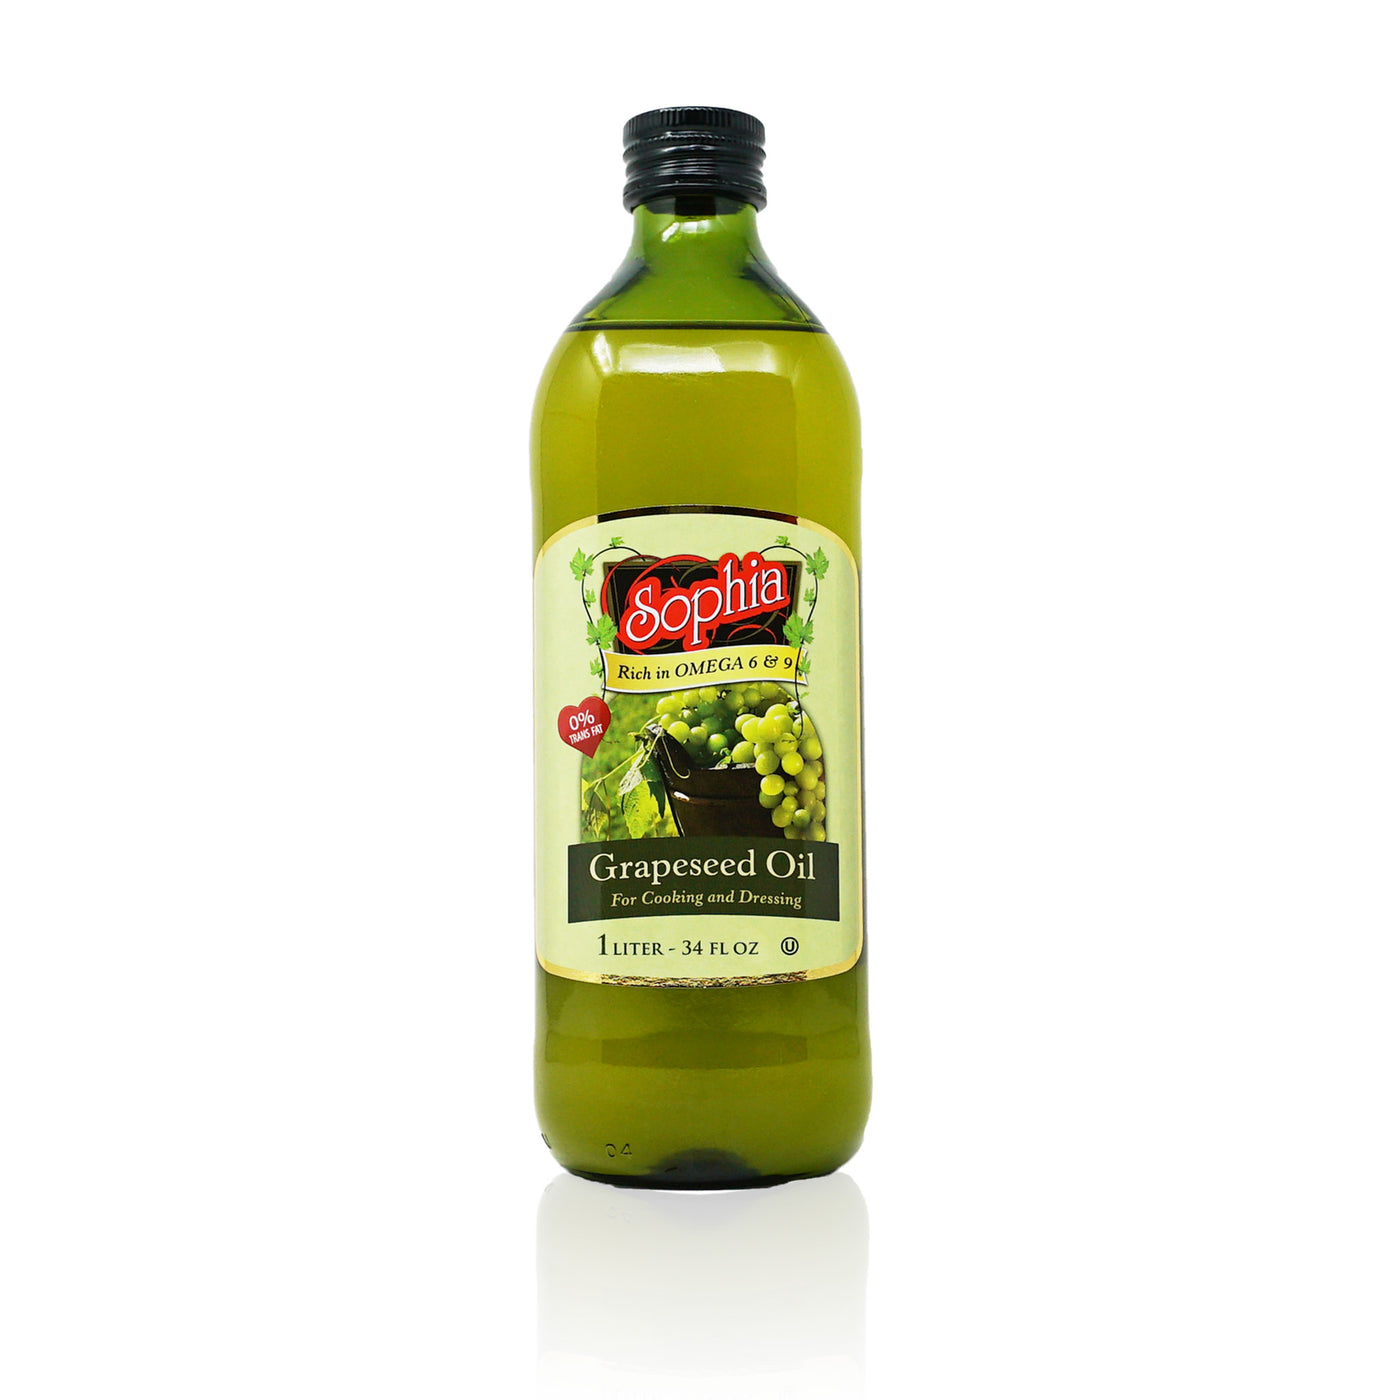 Sophia Oil-Grape Seed Oil 33.8oz